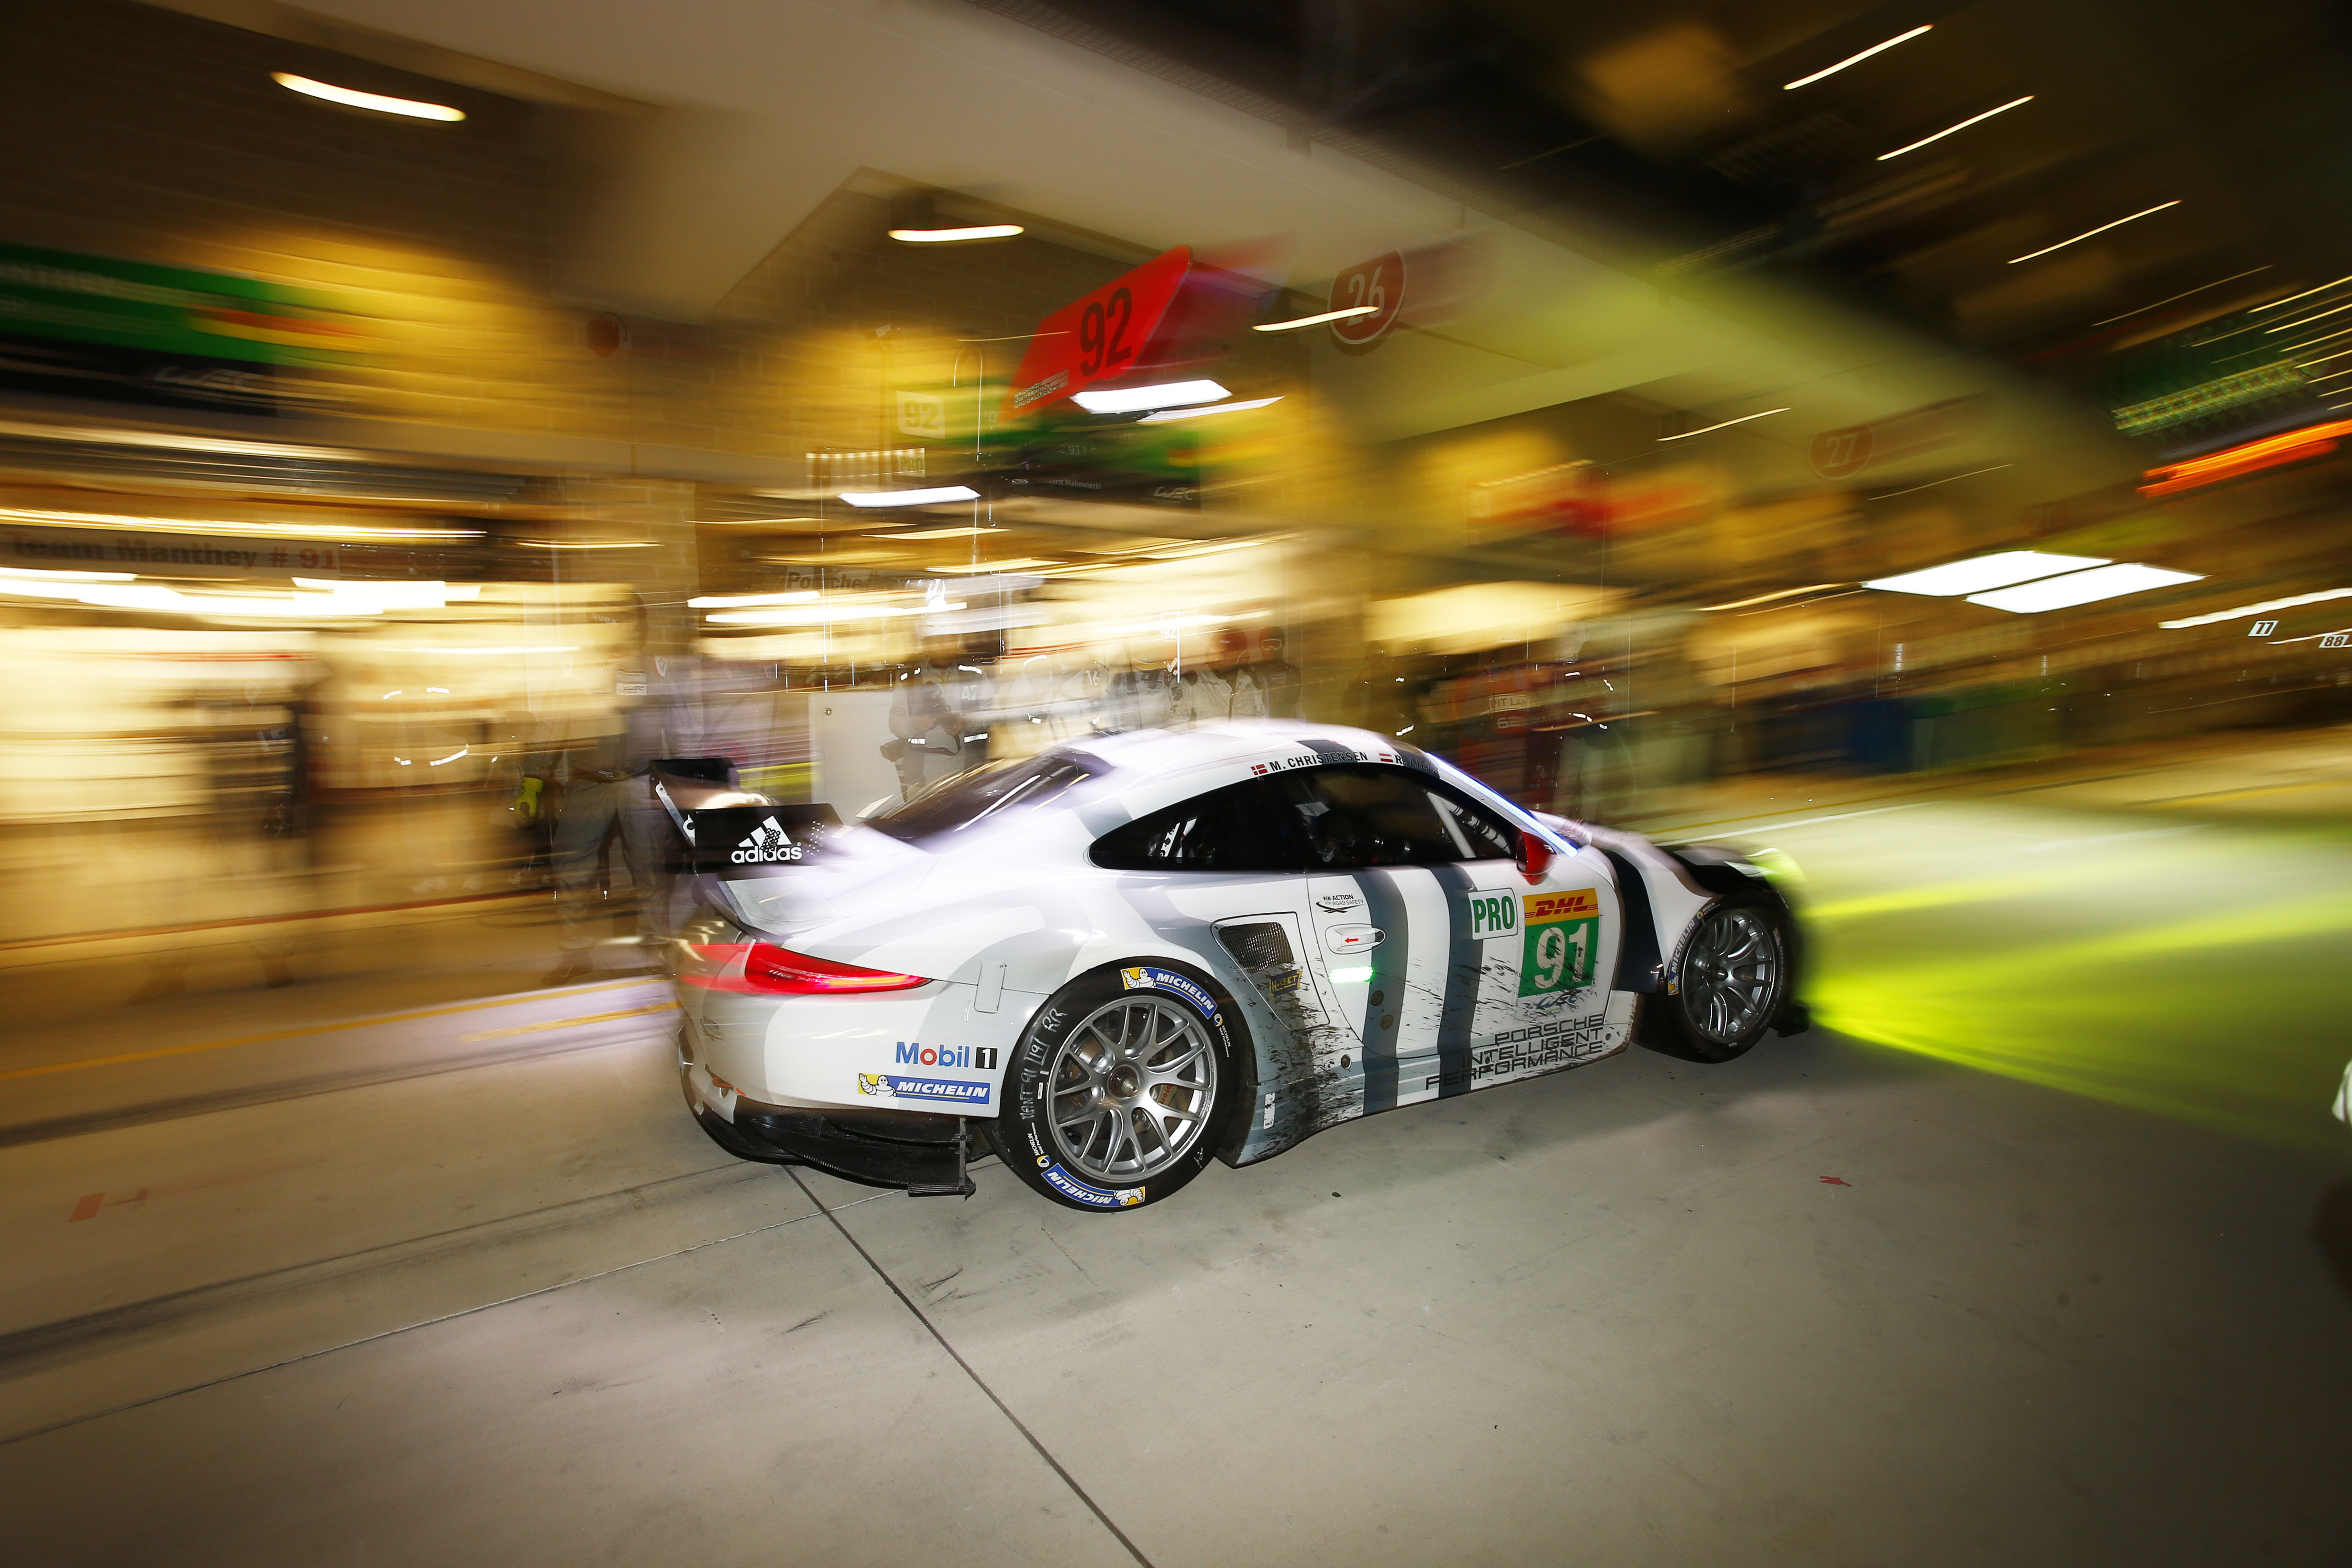 Porsche 911 Rsr Scores Second Straight Double Victory At